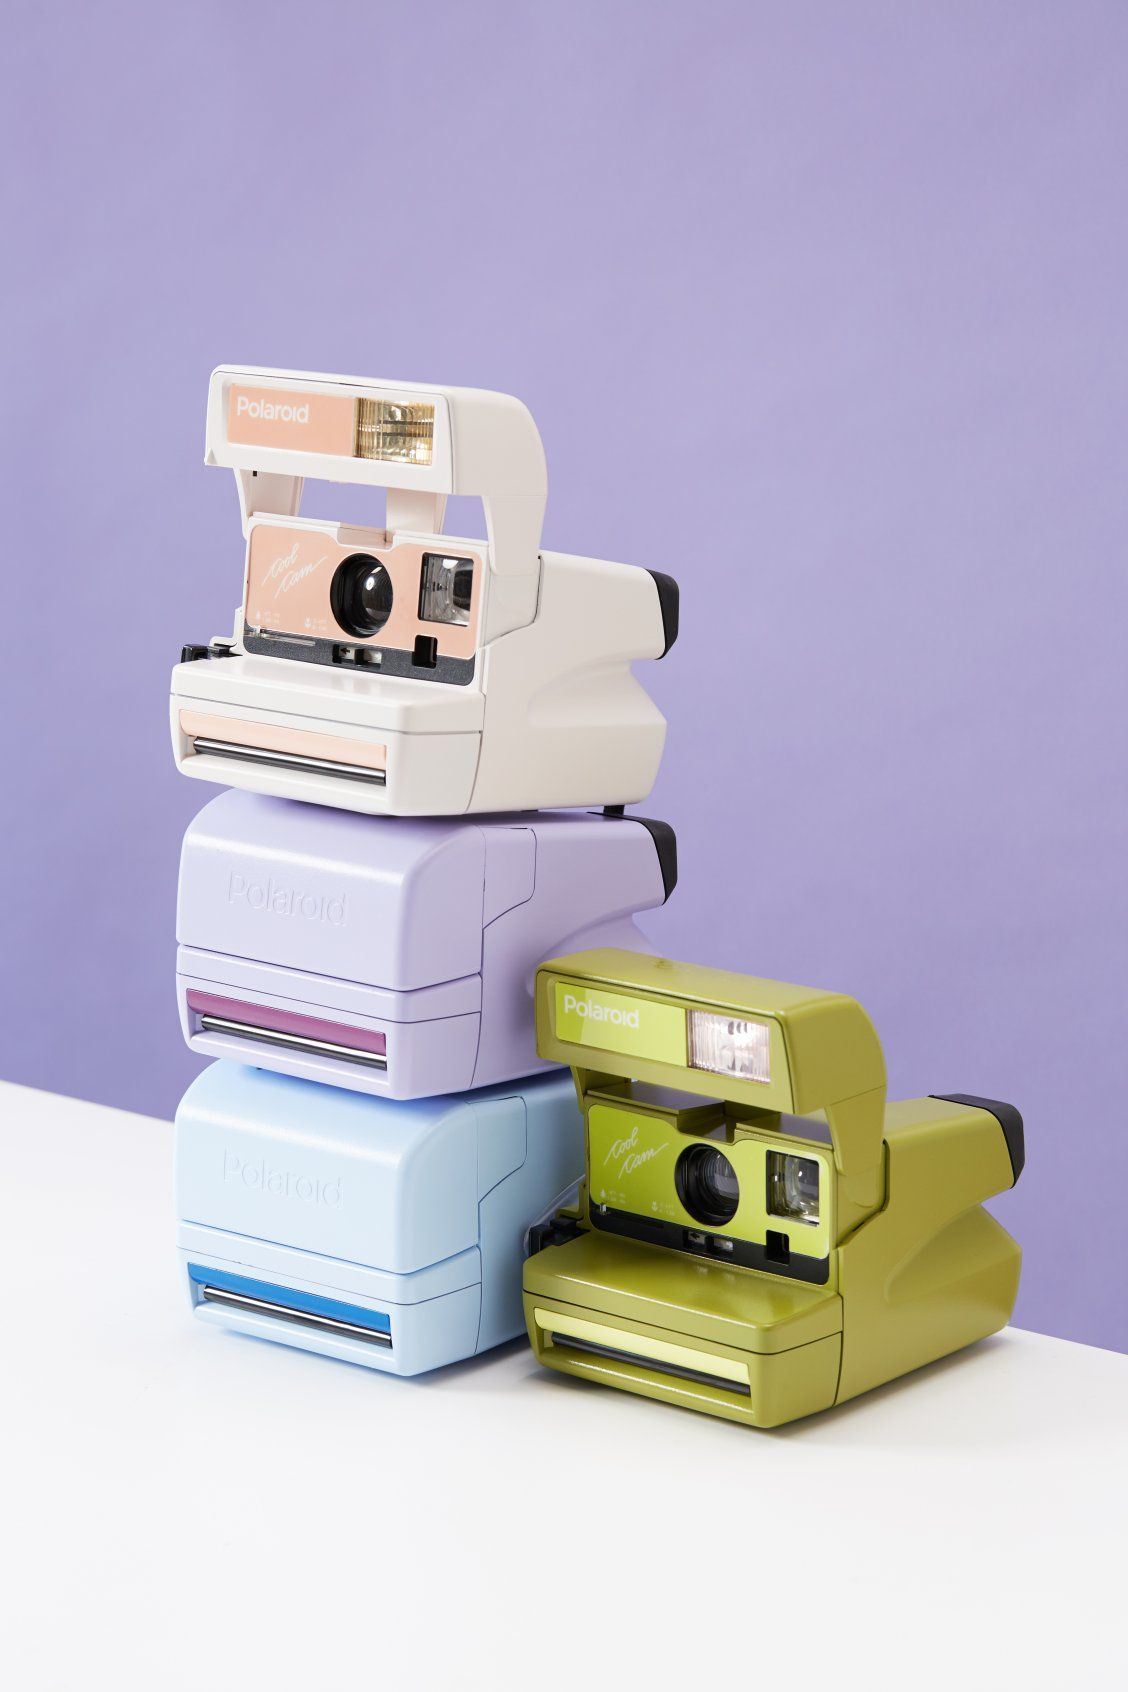 0668bb53b6bdf Impossible X UO Purple Polaroid 600 Cool Cam Instant Camera   Urban  Outfitters   Home   Gifts   Cameras   Film  UOEurope  UrbanOutfittersEU   UOHome